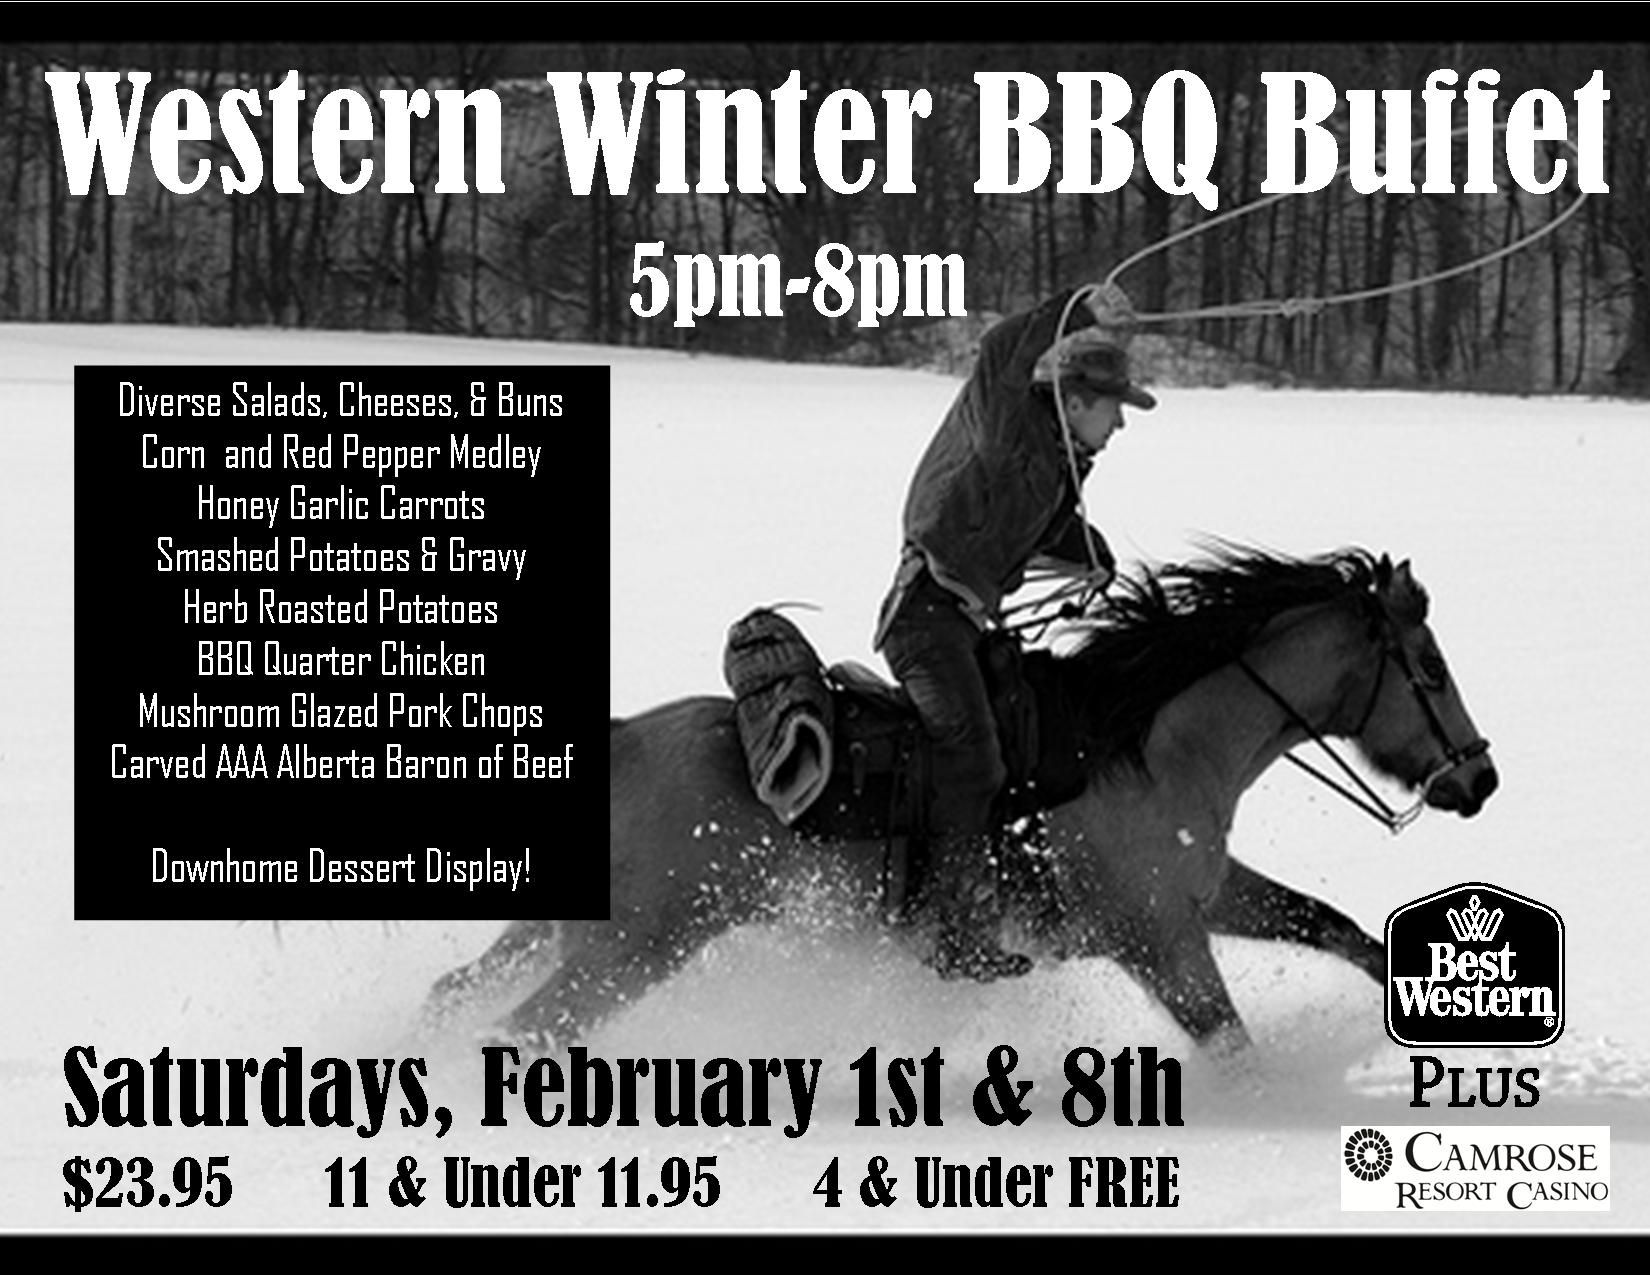 Let us do the cooking on Saturday Feb. 8th as we host a Western Winter BBQ Buffet.